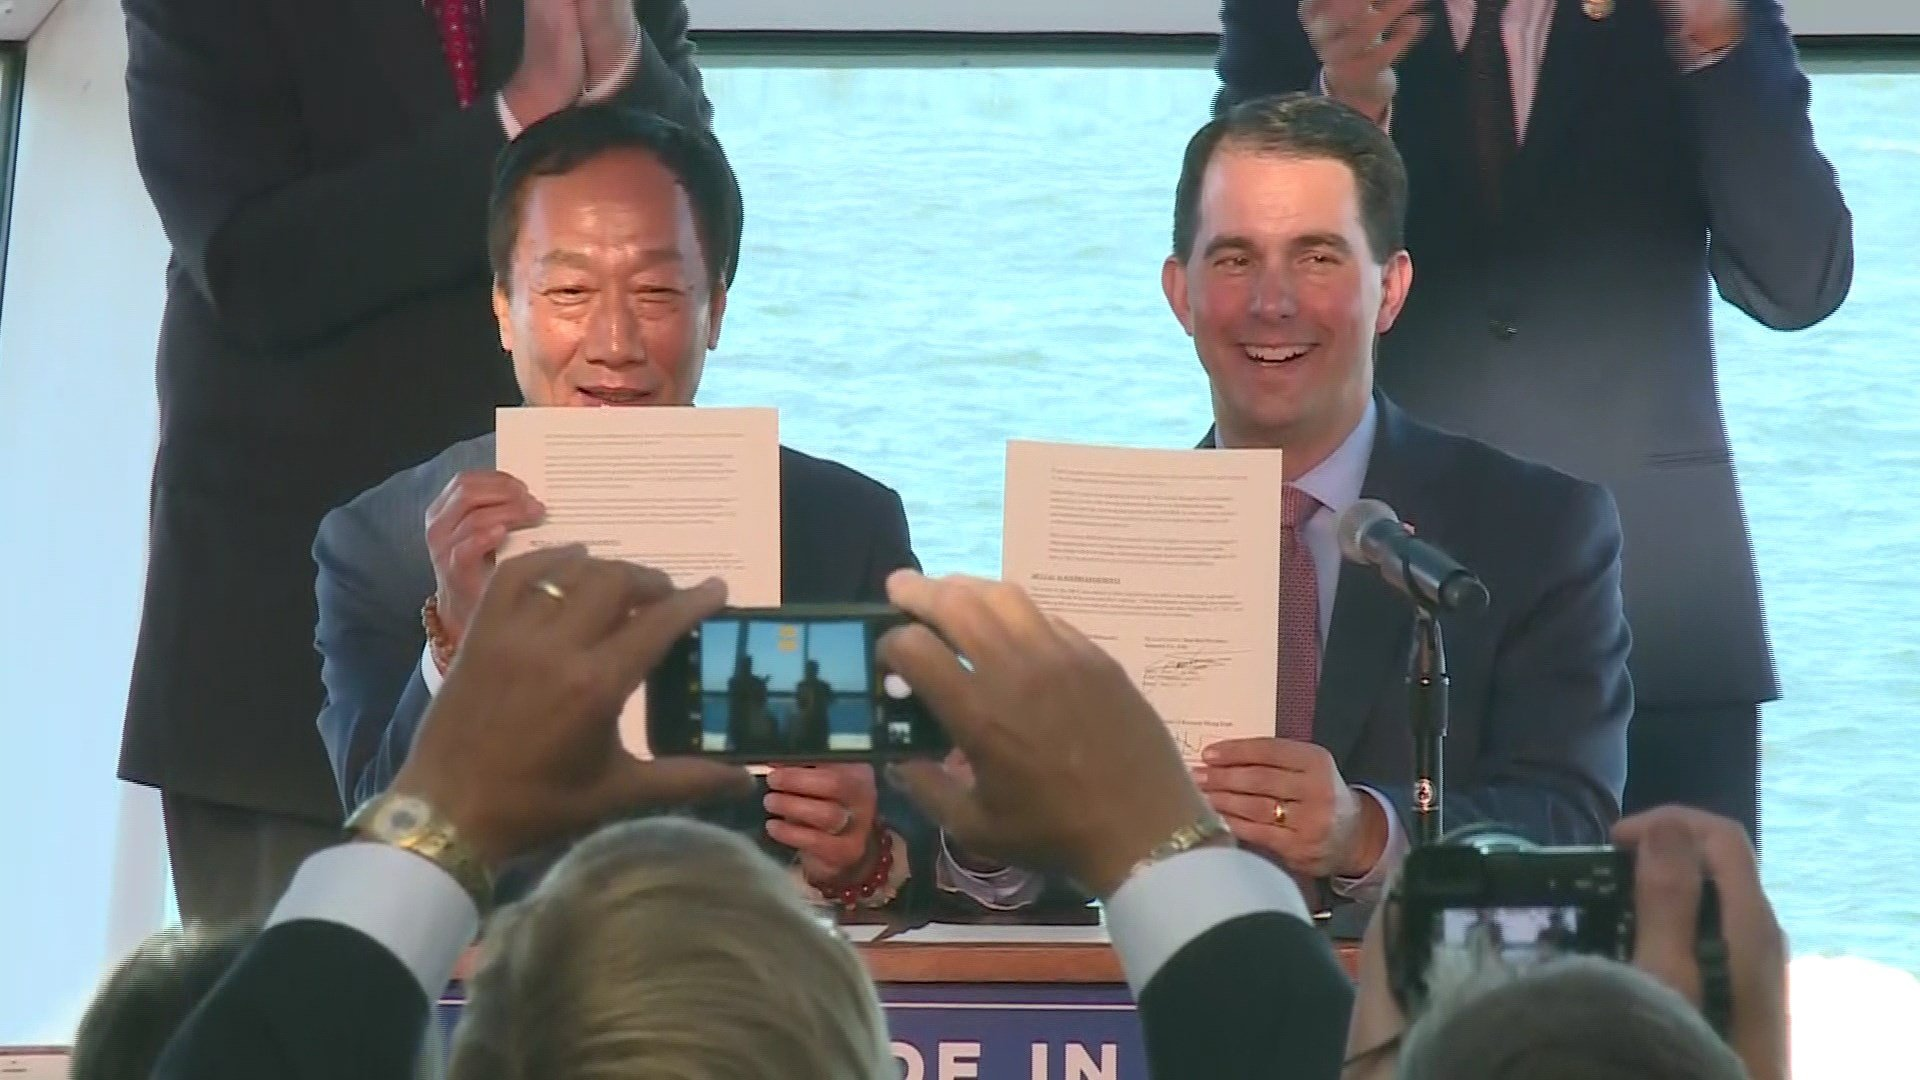 Governor Walker to sign Foxconn incentive bill